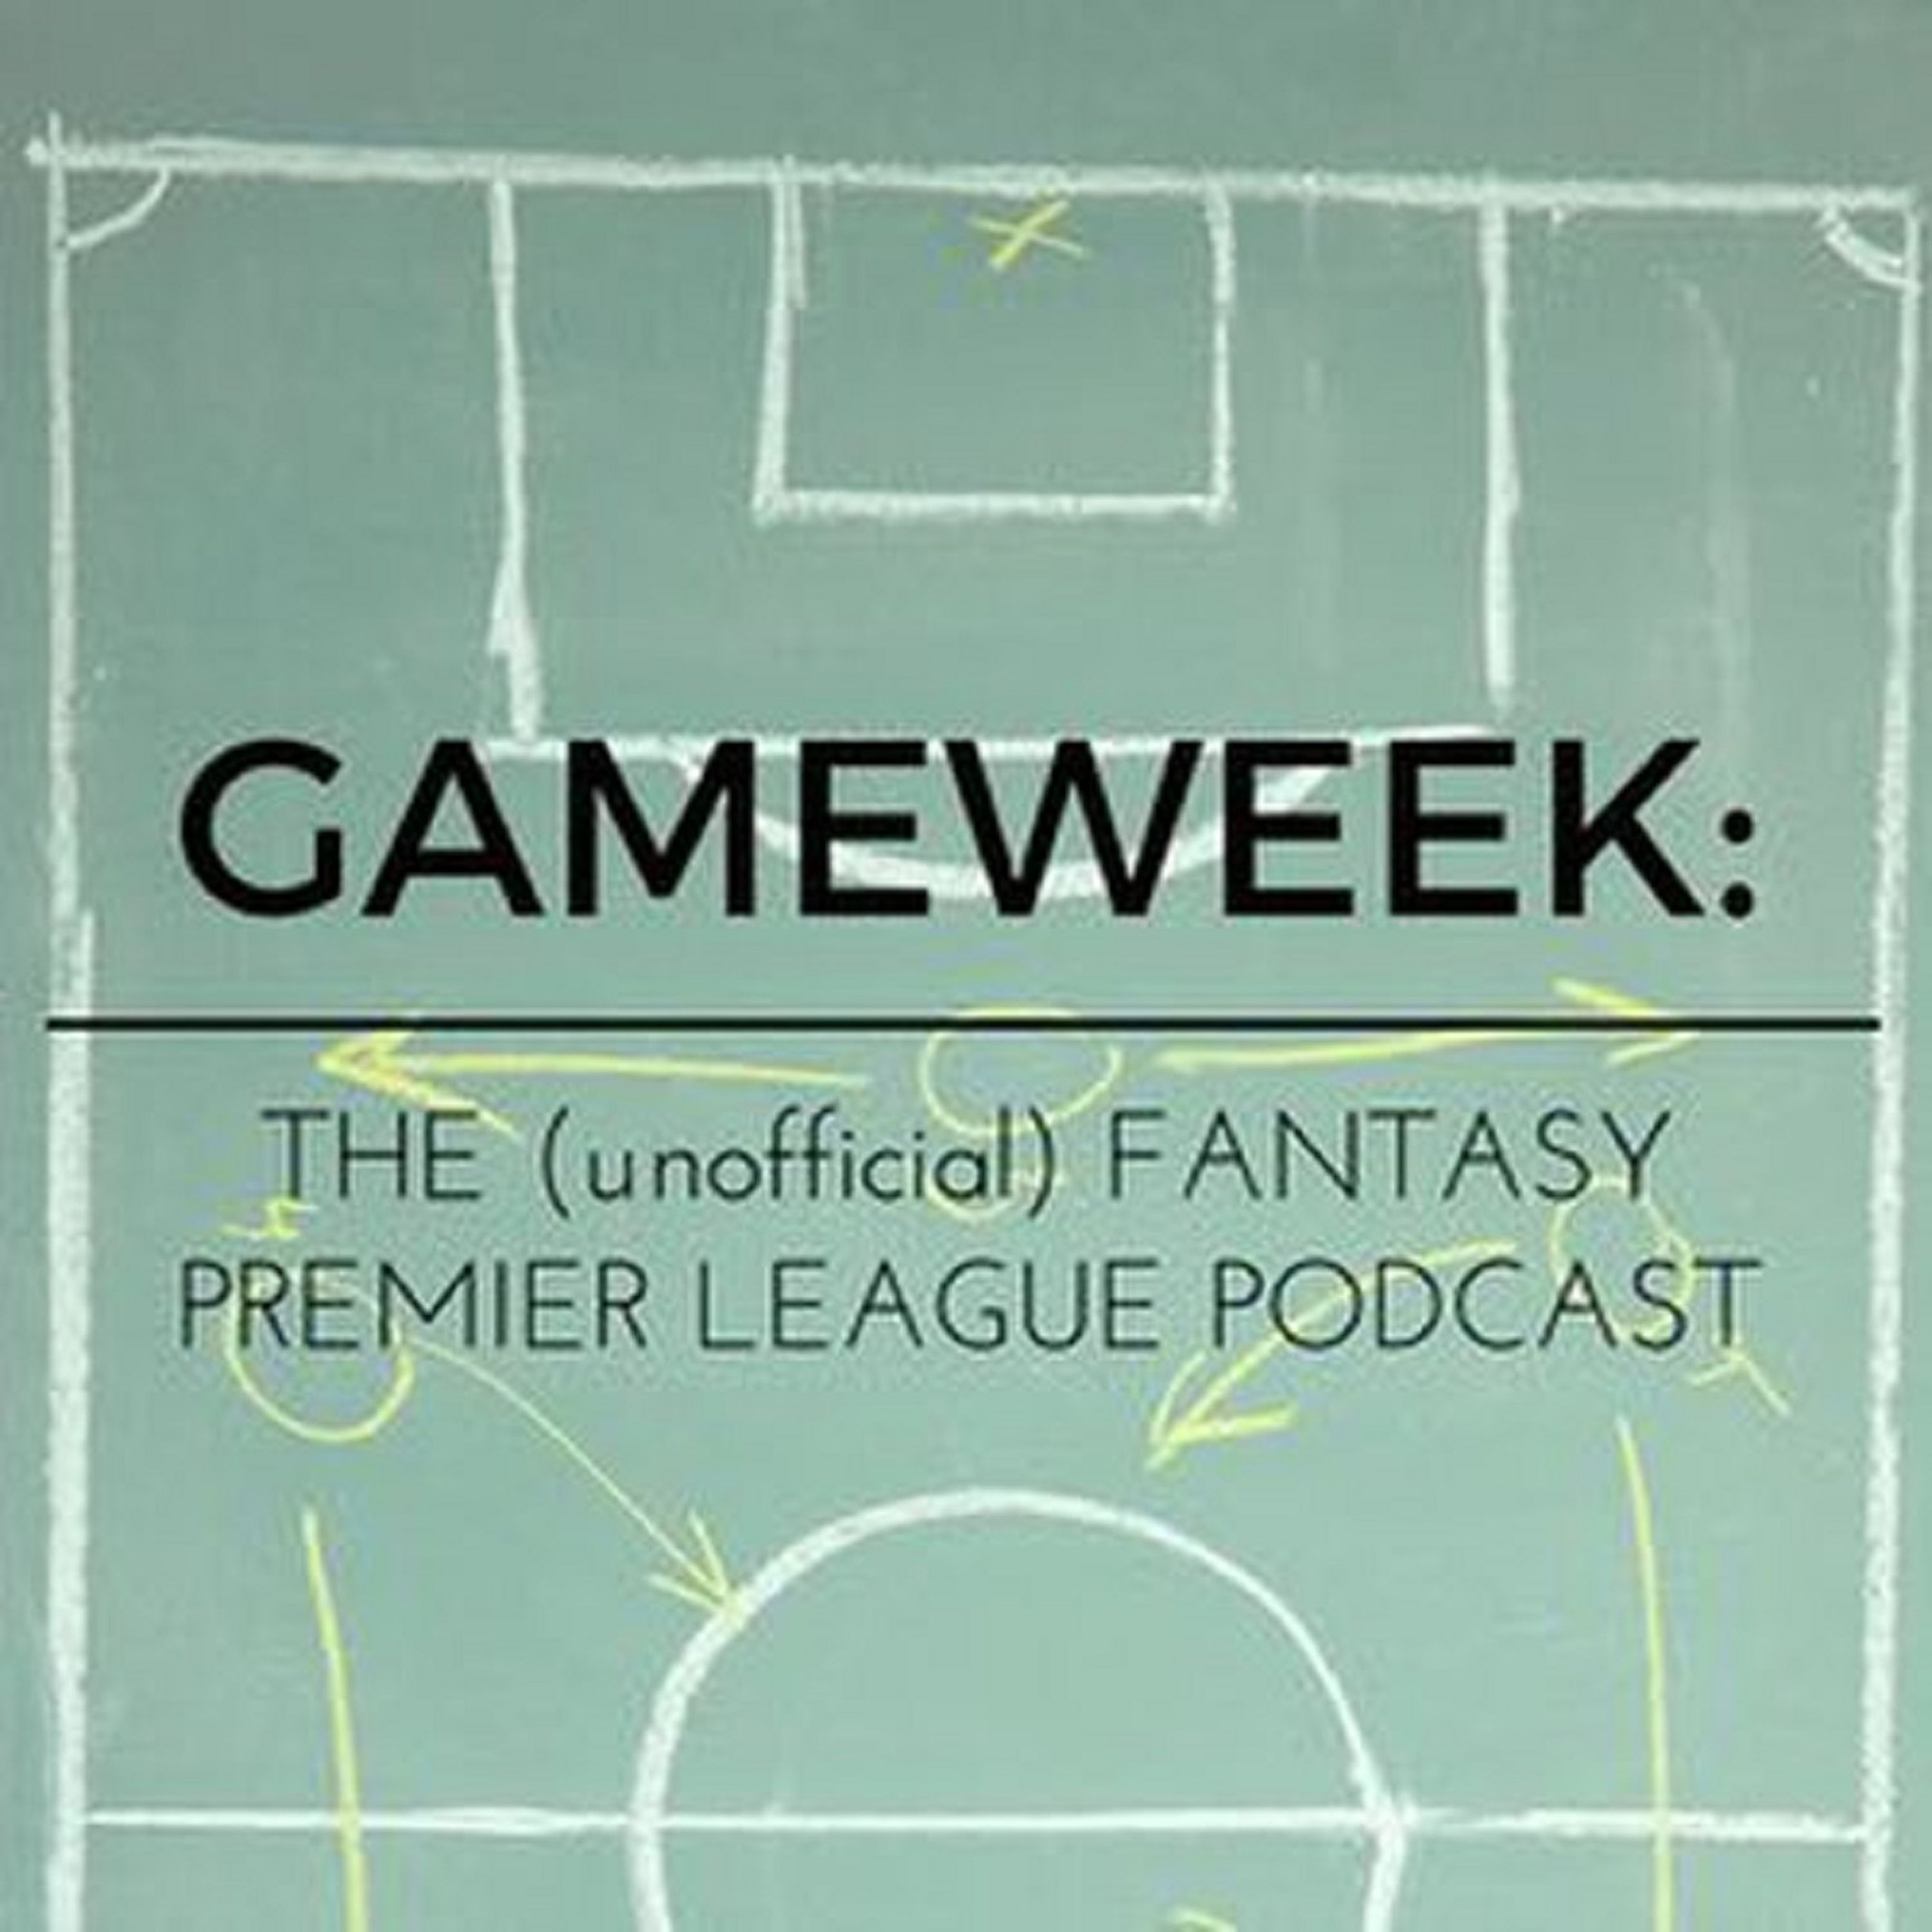 Gameweek: The (unofficial) Fantasy Premier League Podcast on